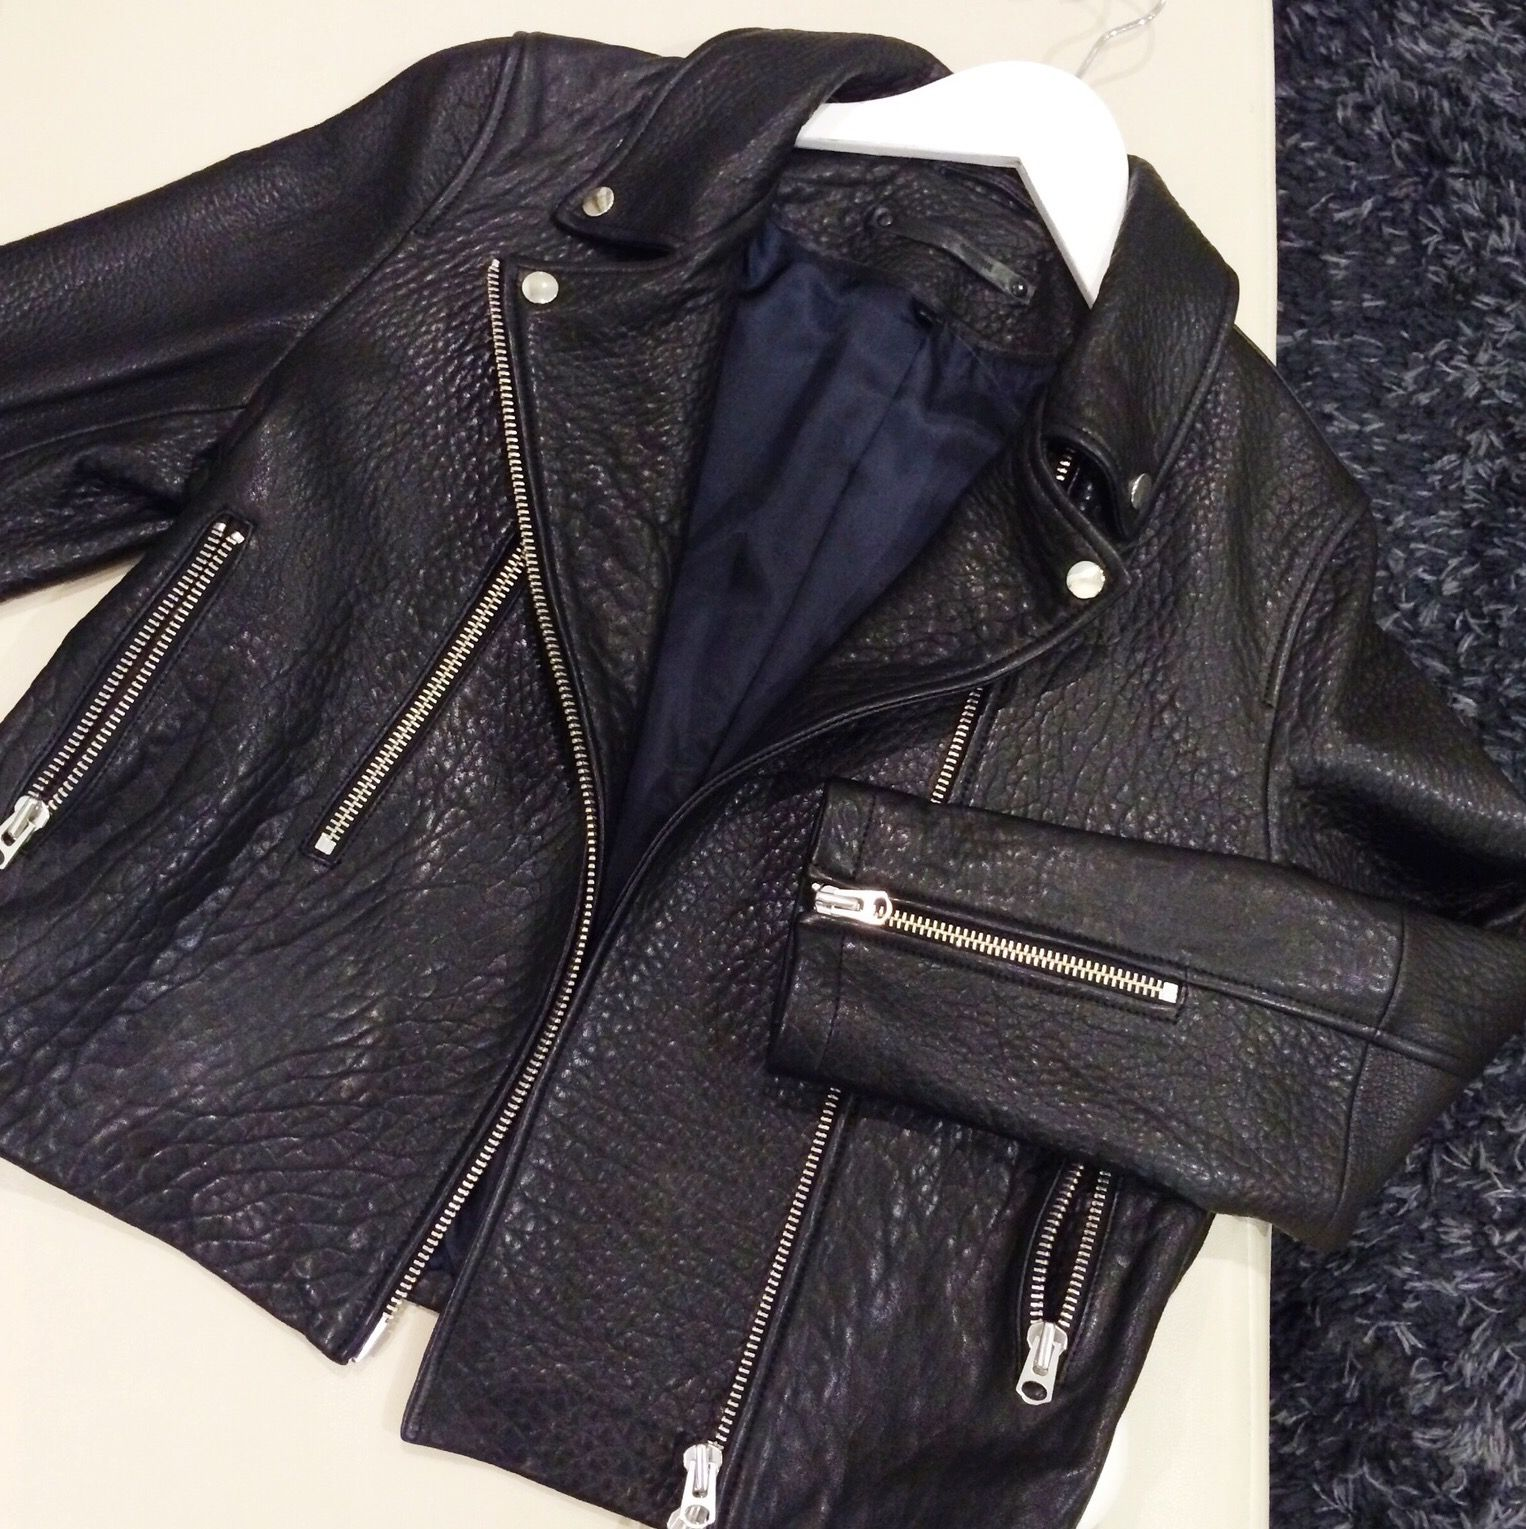 Ultimate Biker Jacket by Boutique - Jackets - Clothing | Clothes, Fashion,  Jacket outfits